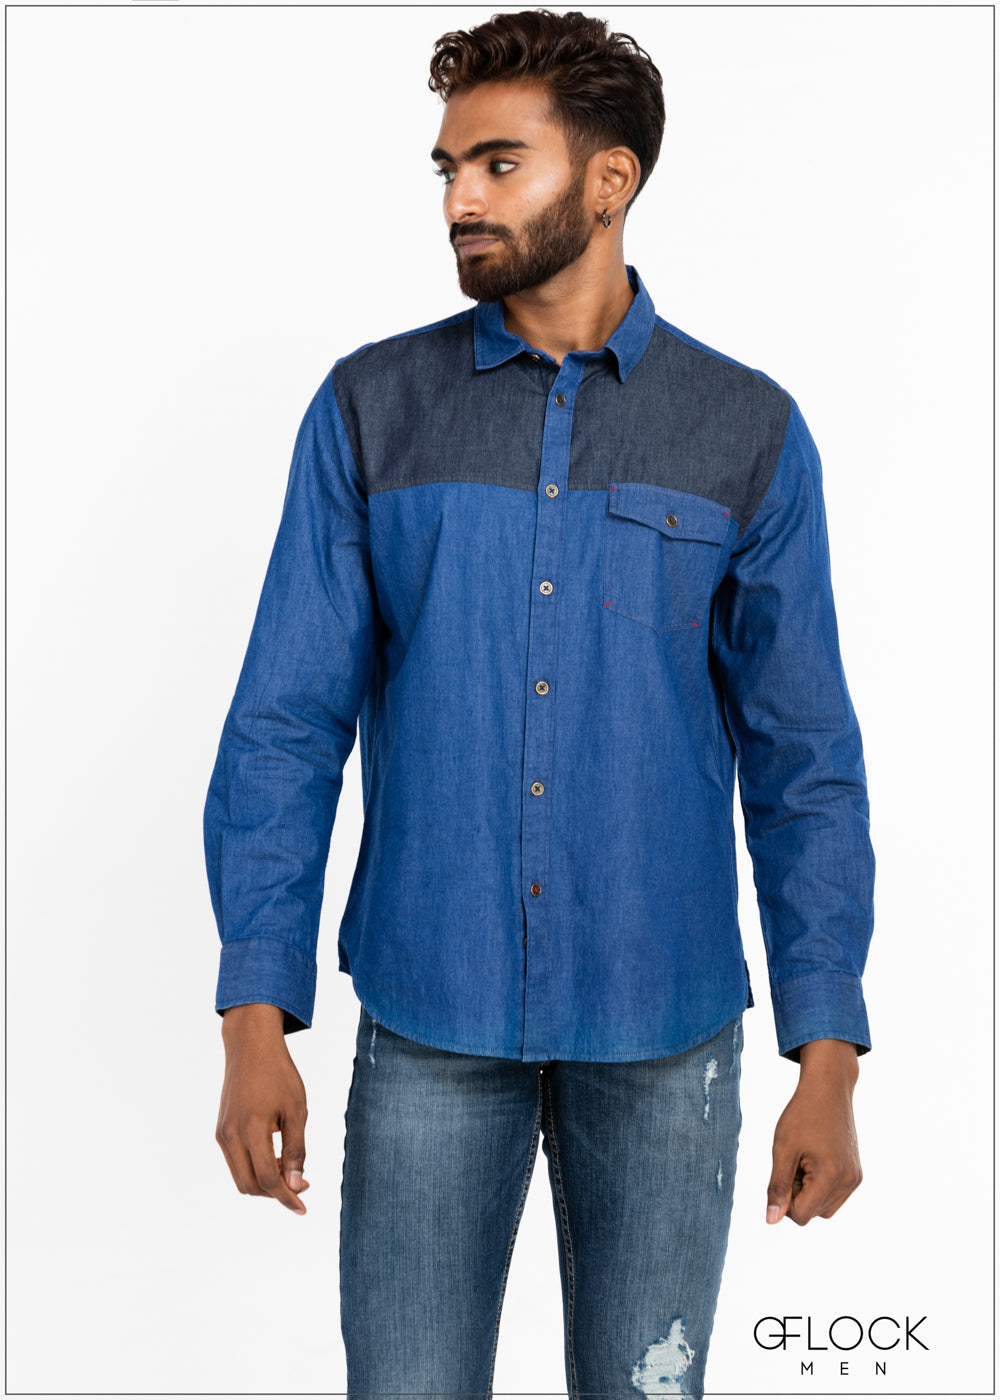 Contrast Chambray Shirt